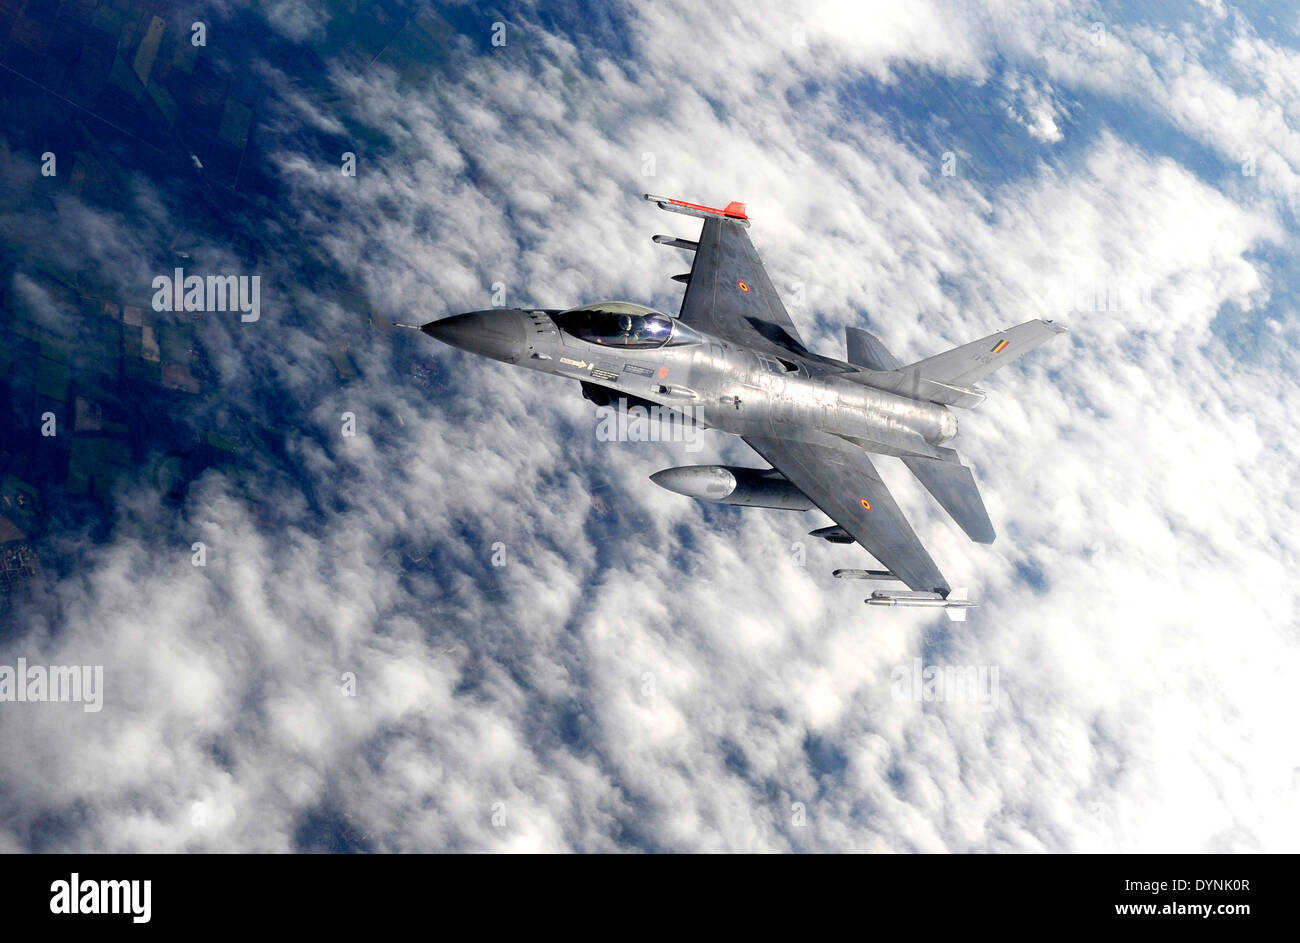 A Belgian F-16 Fighting Falcon aircraft during exercise Brilliant Arrow September 21, 2011 over Germany. - Stock Image